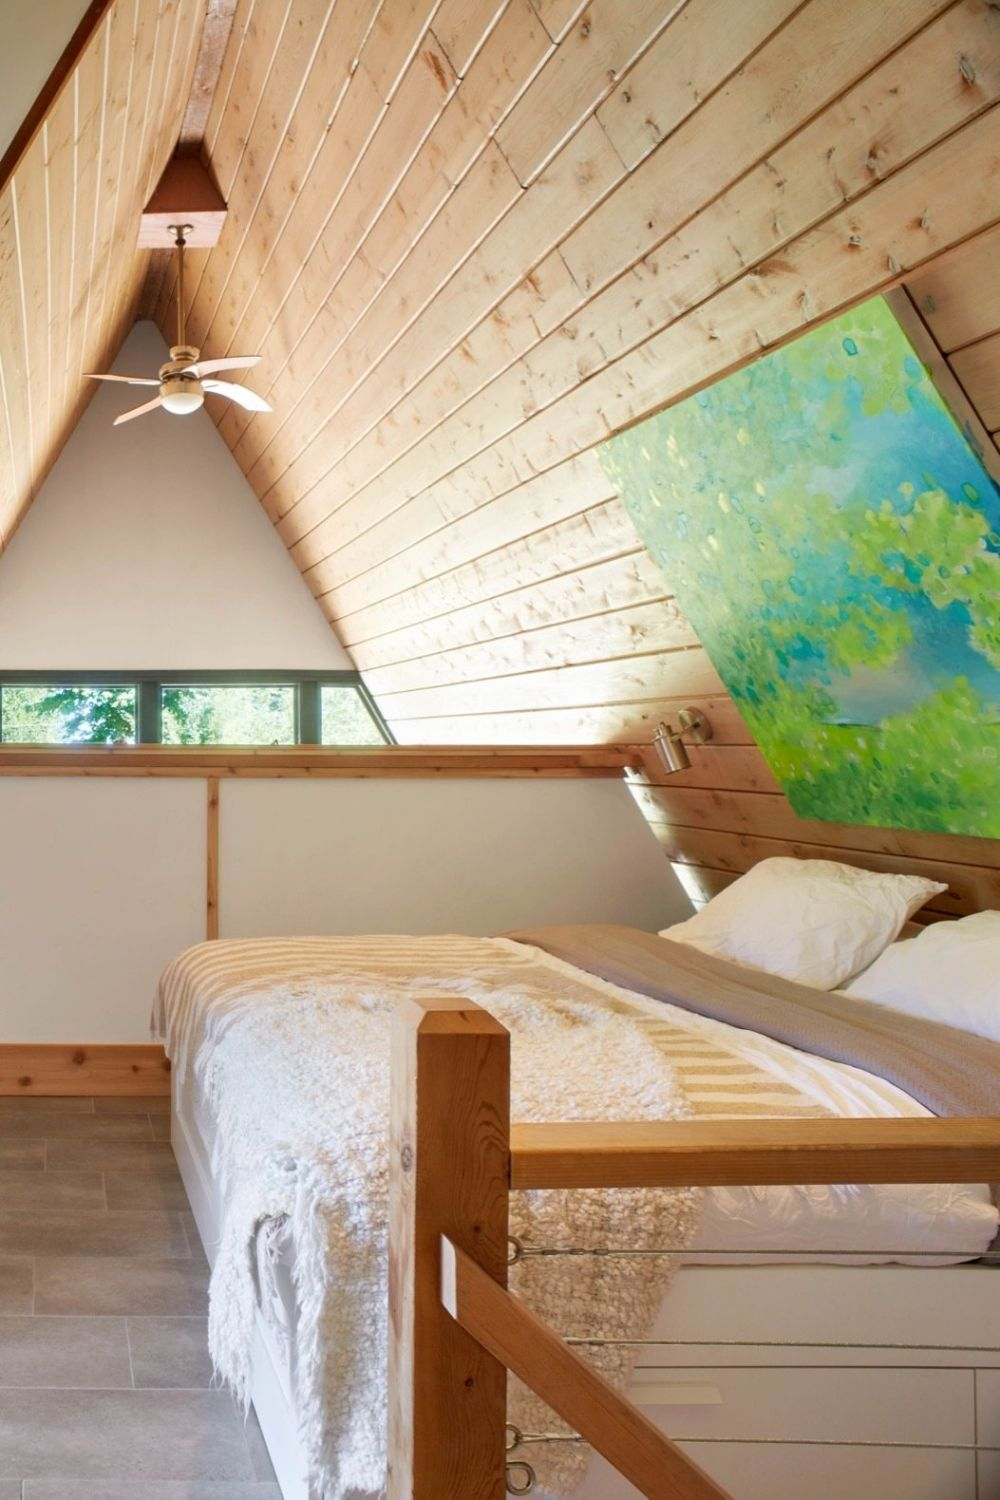 The pitched roof ensures a super cozy ambiance upstairs even though it also reduces the footprint